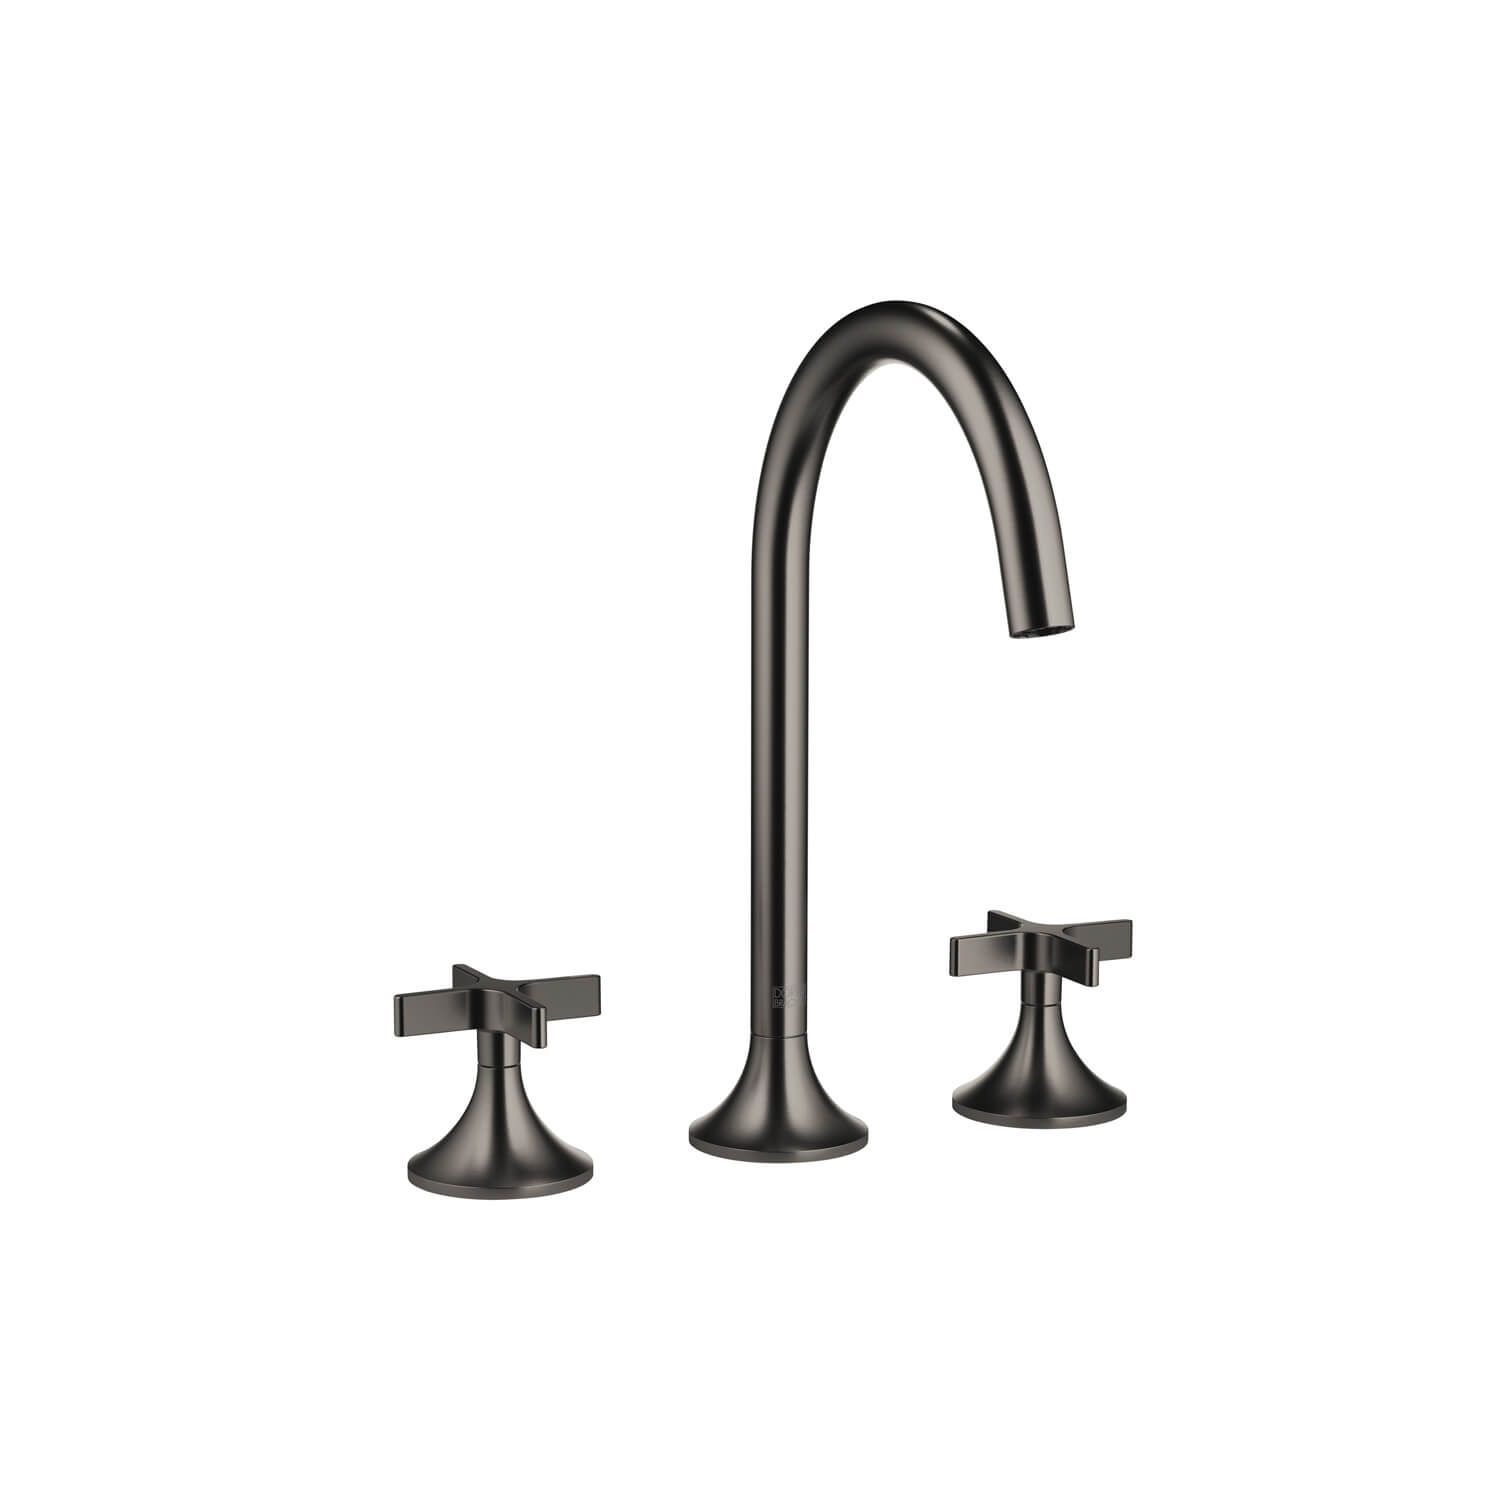 Dornbracht 20713809-990010 VAIA Three-Hole Lavatory Mixer with Drain - Dark Platinum Matte